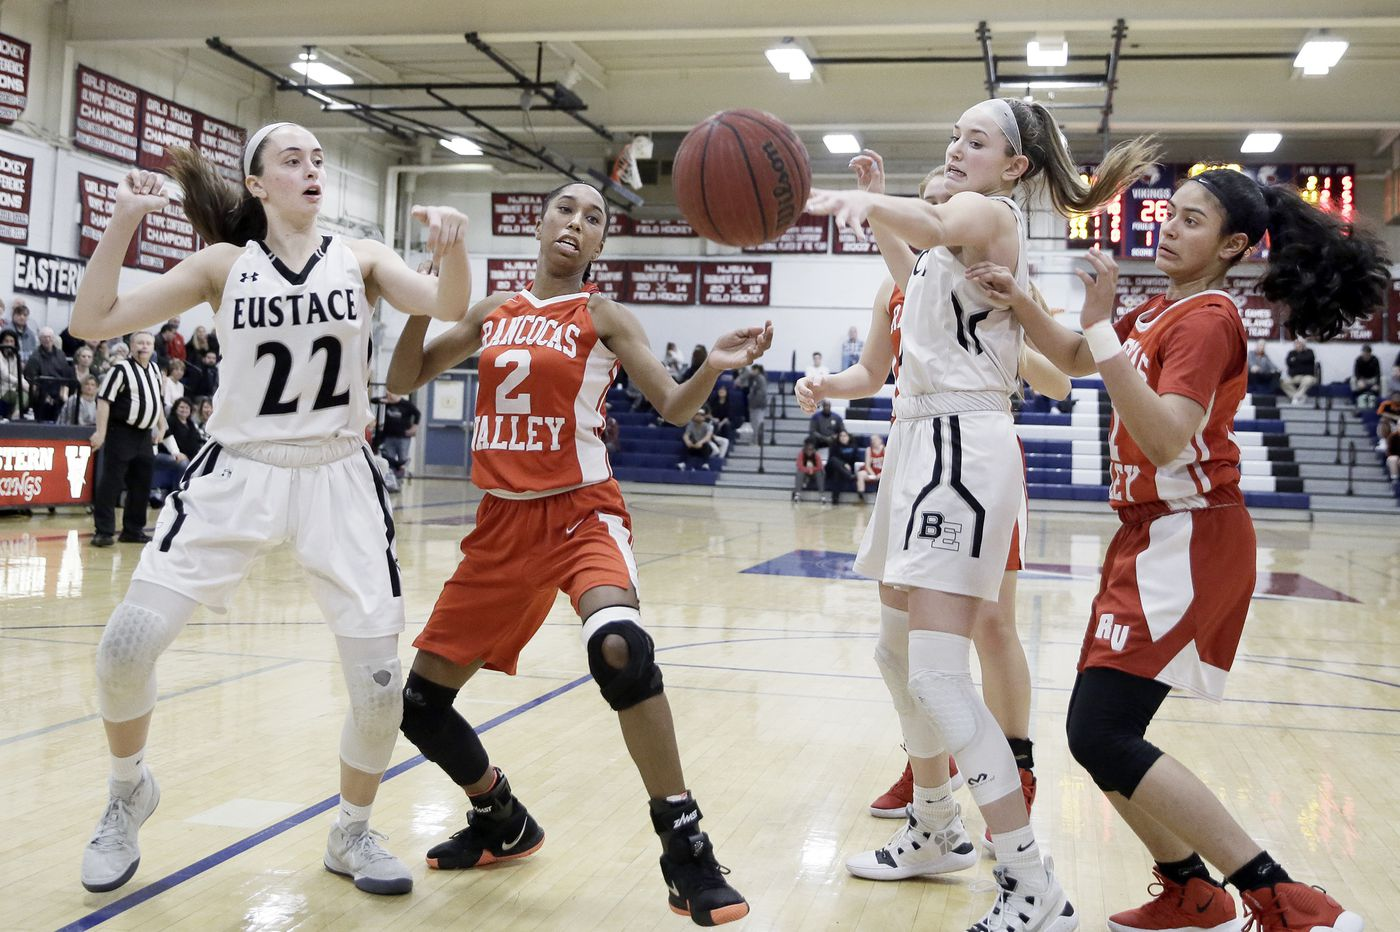 Bishop Eustace to meet Cherokee girls in final of South Jersey Basketball Invitational